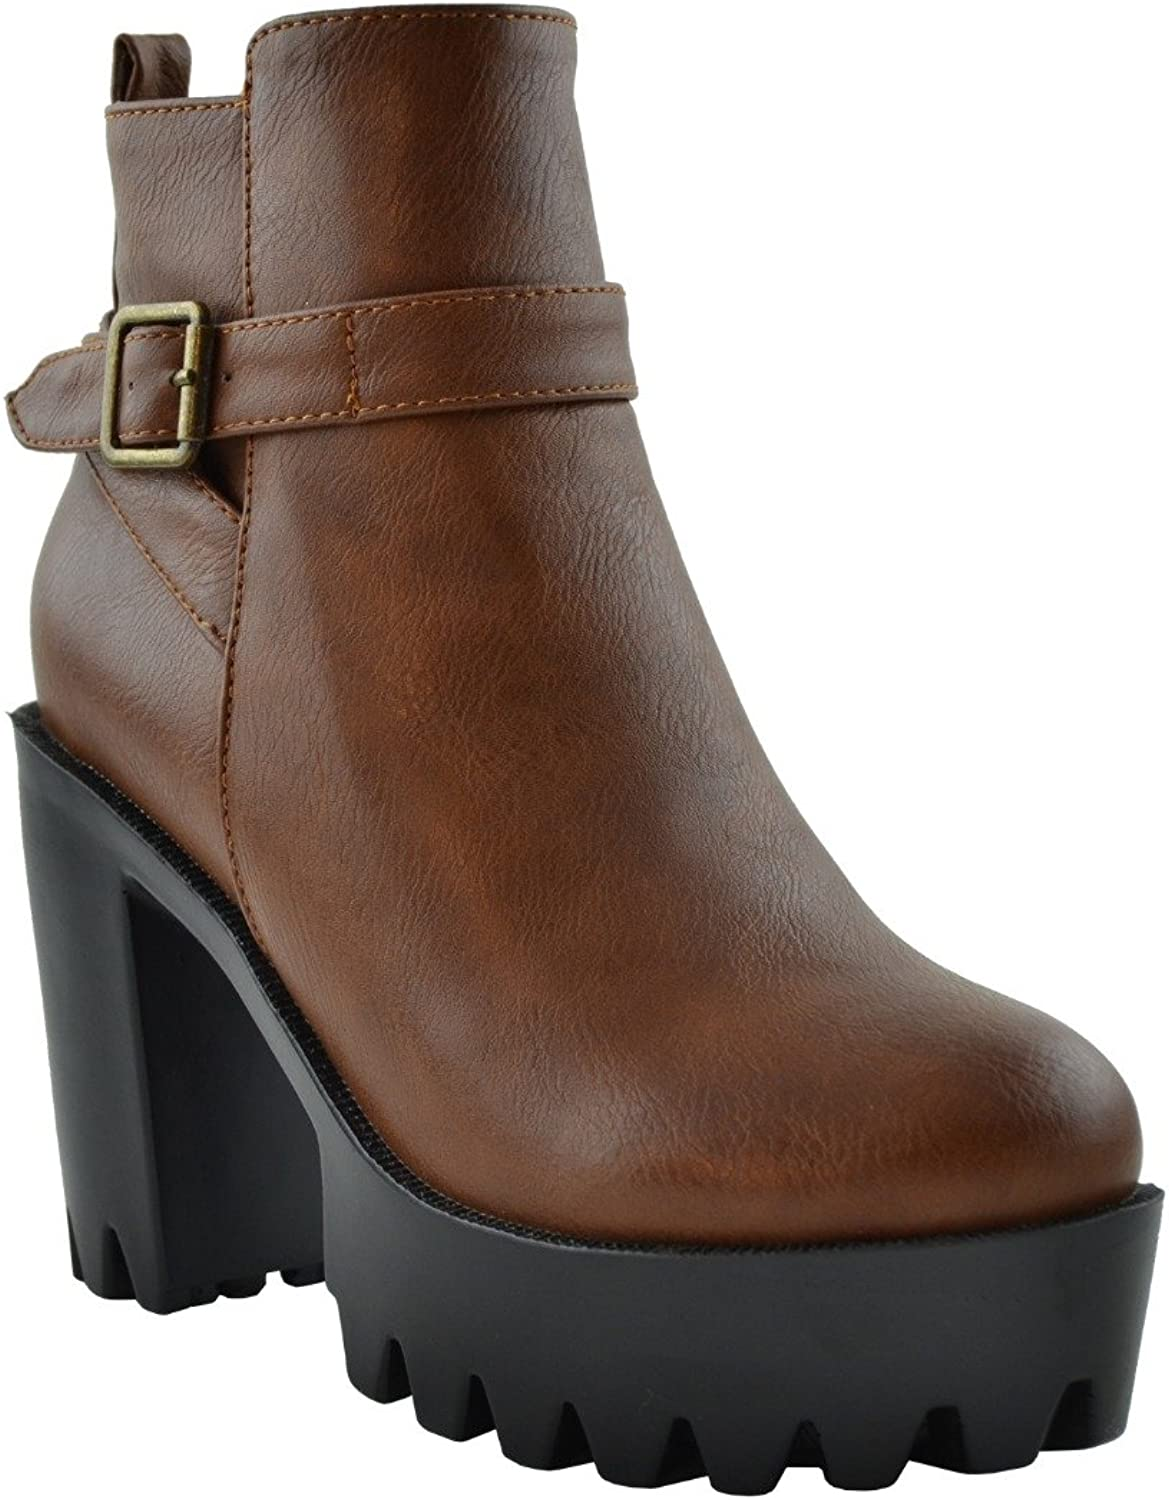 Generation Y Women's Ankle Boots Lug Sole Chunky Heel Buckle Casual Booties